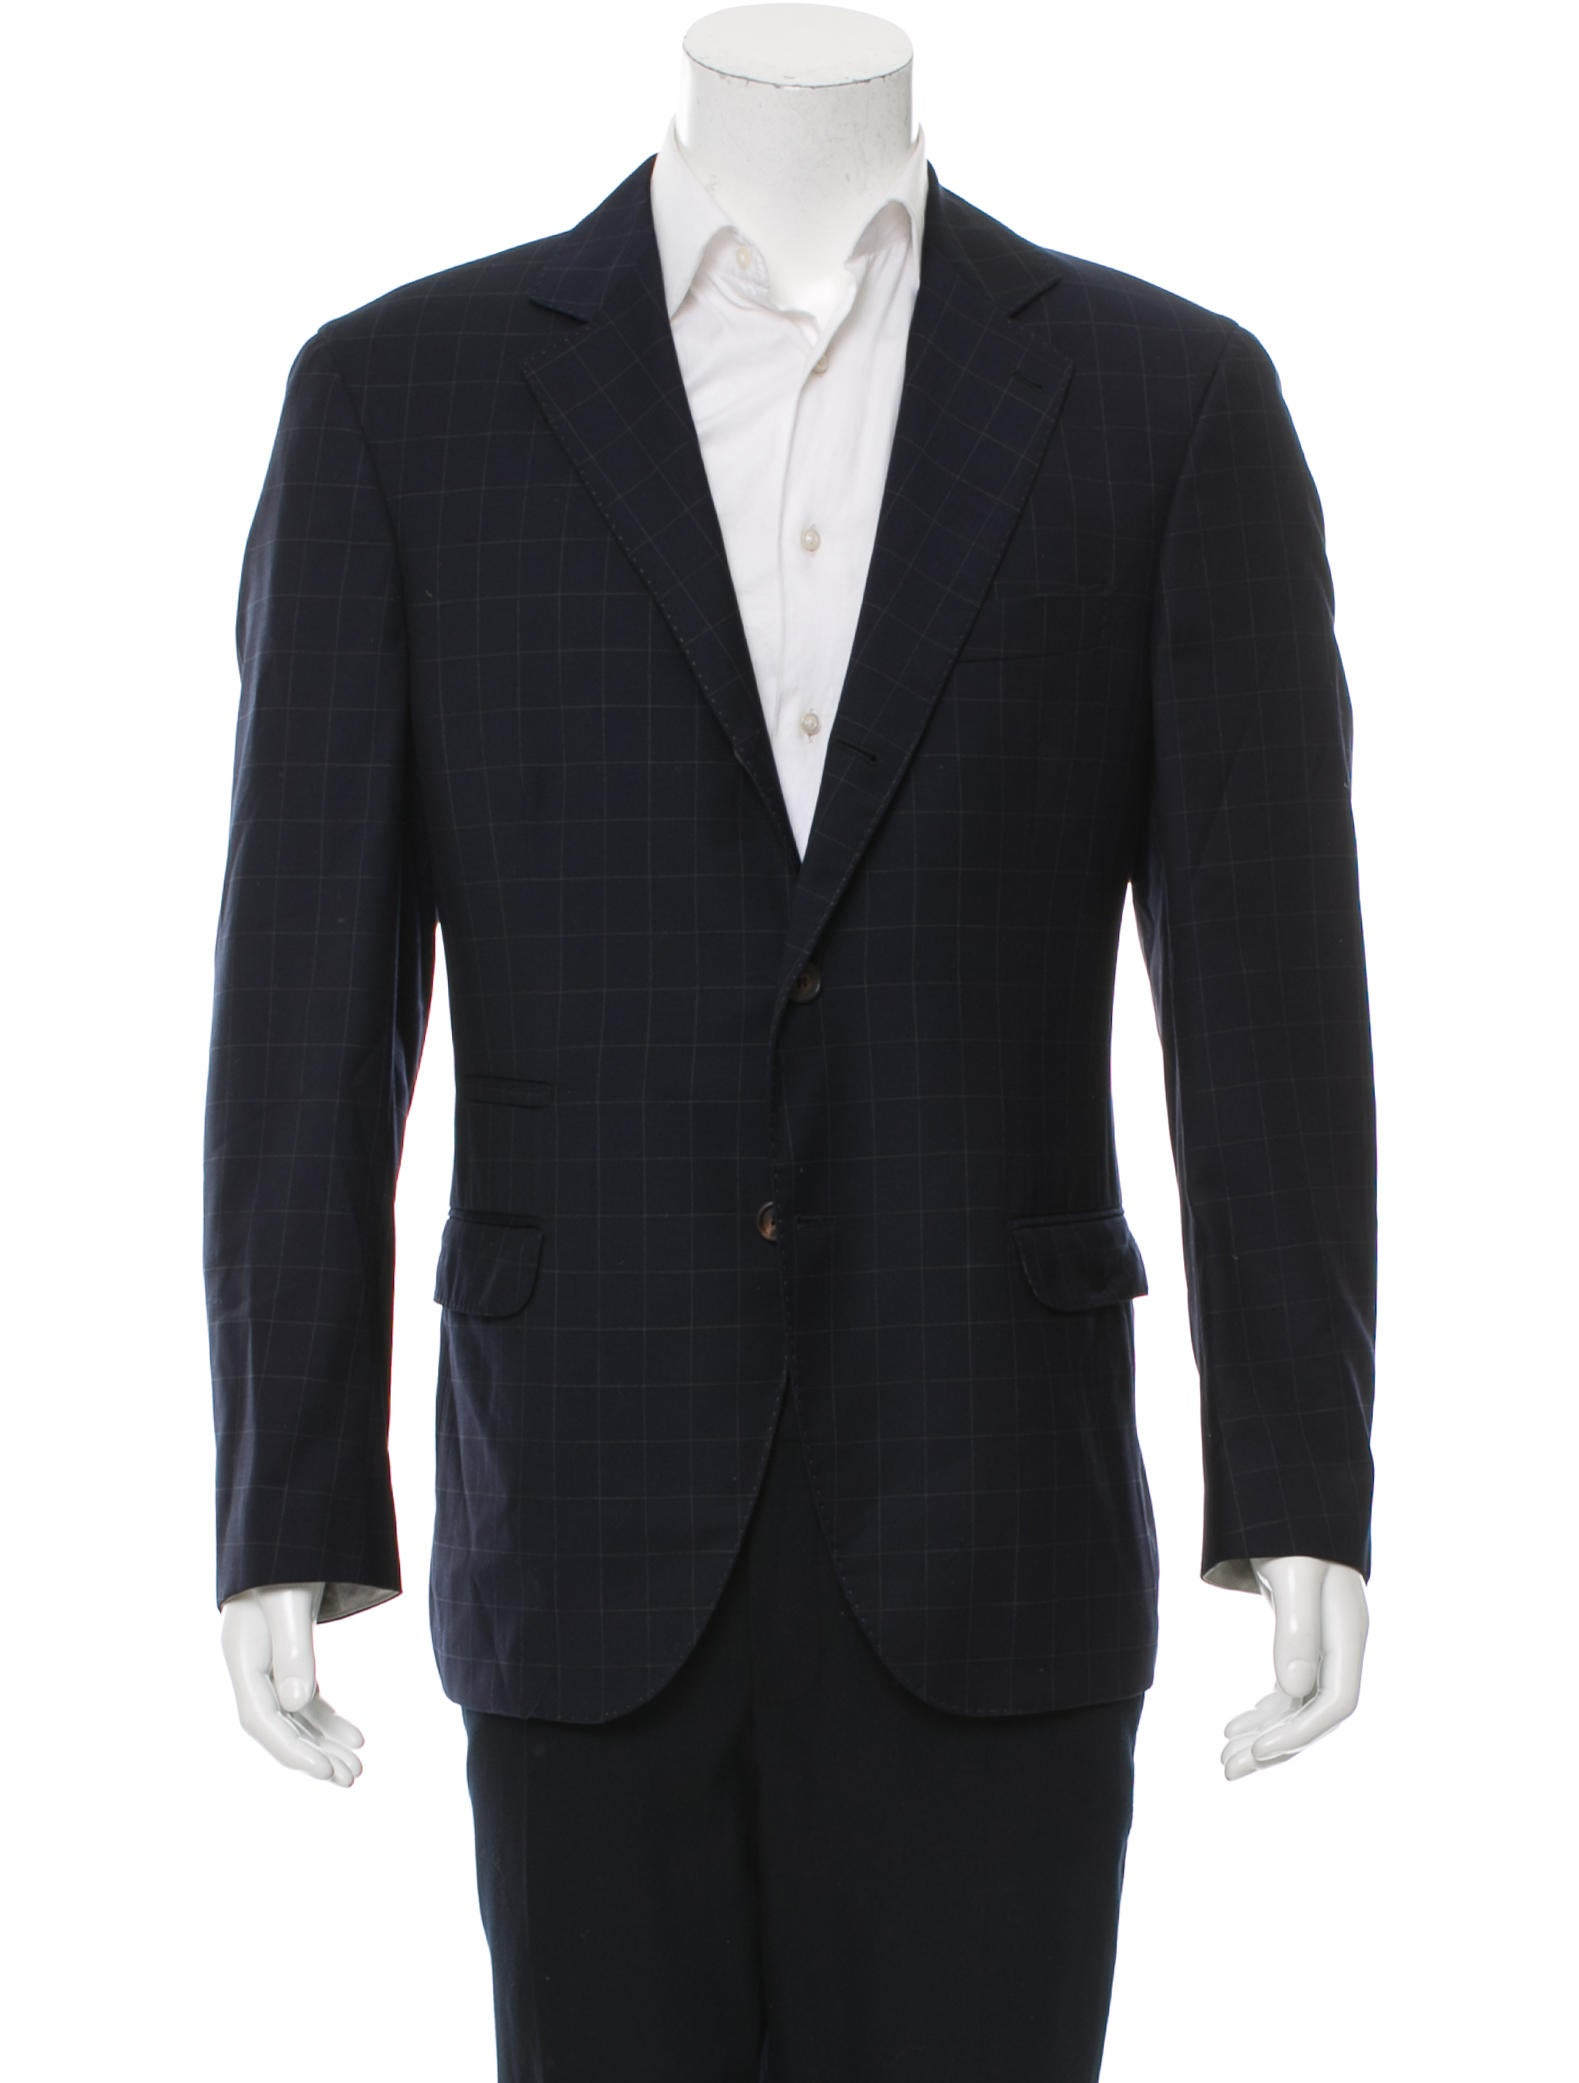 Find great deals on eBay for three button blazer. Shop with confidence.